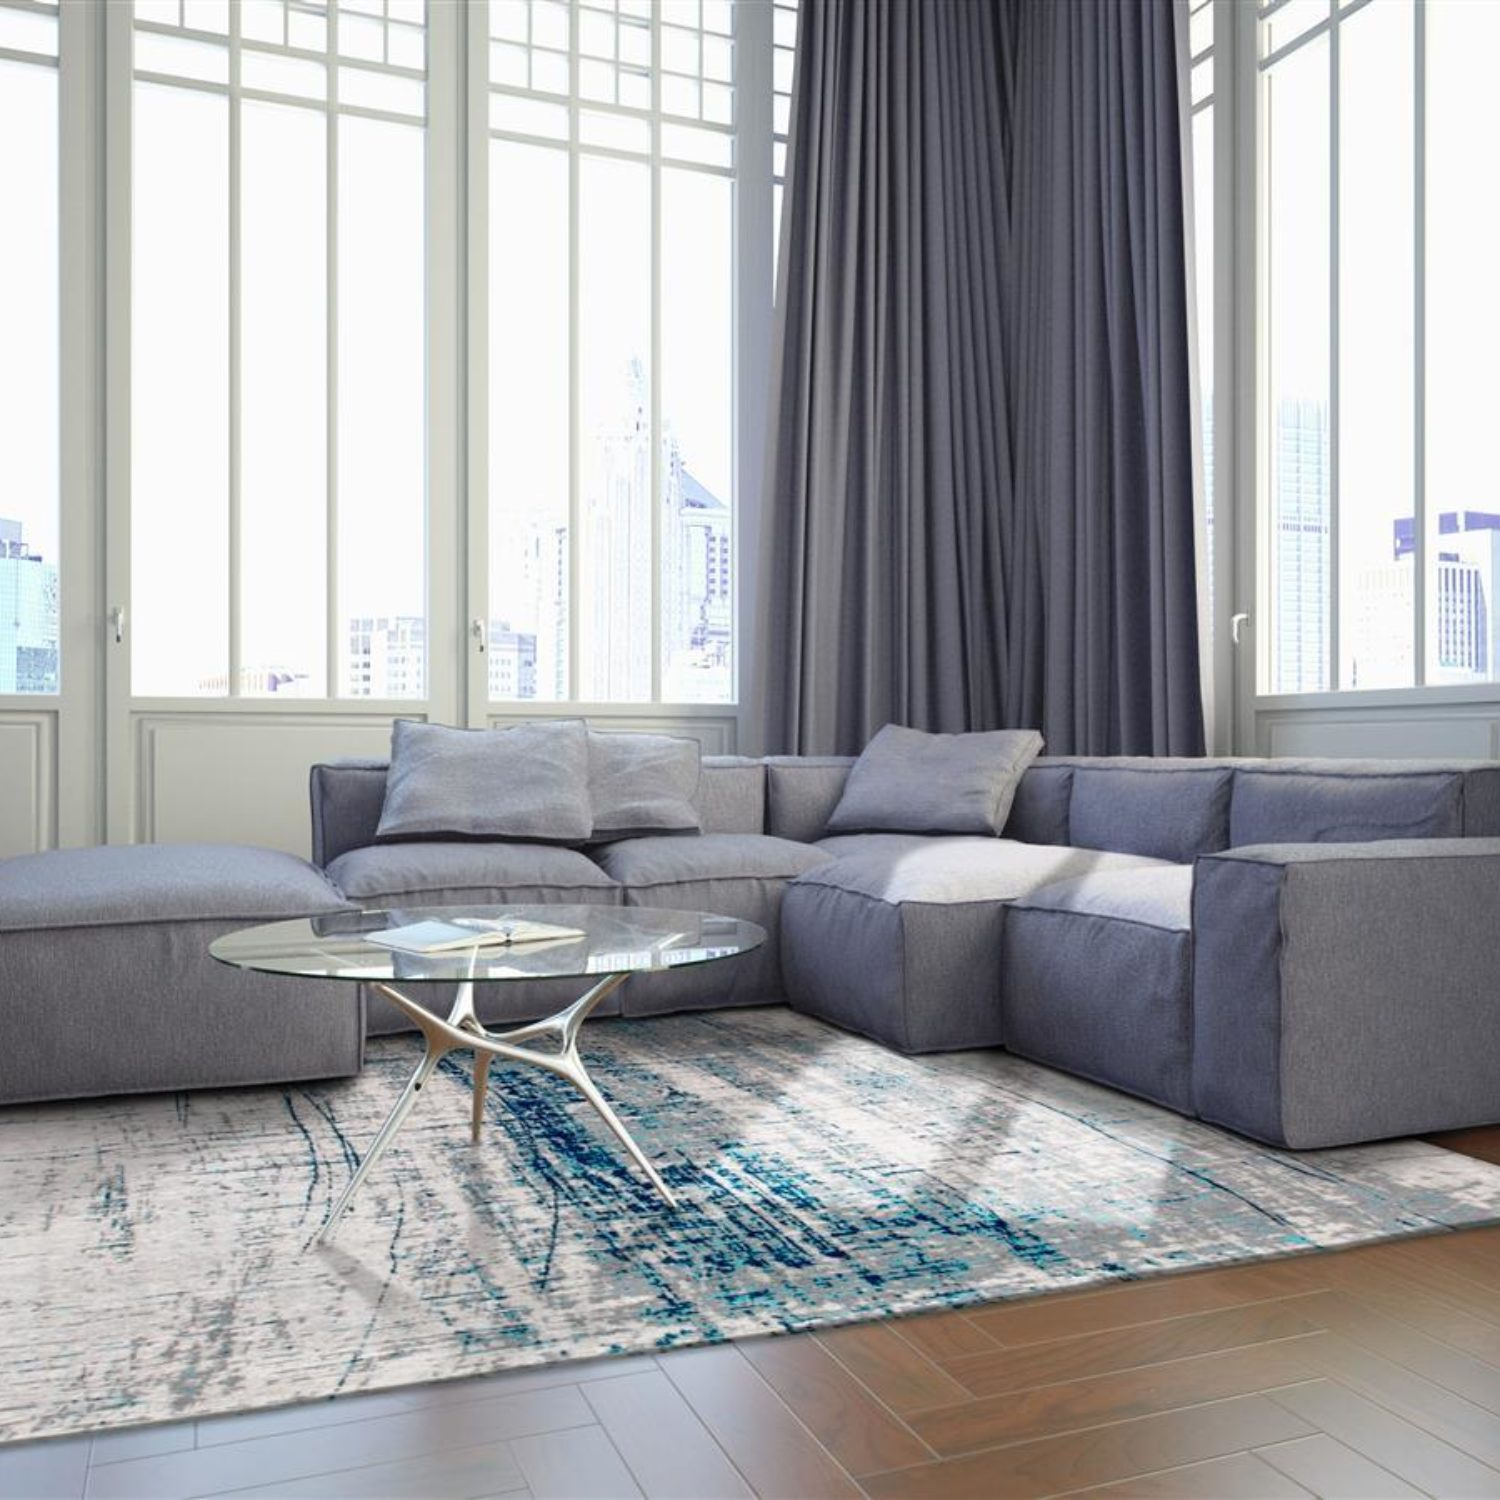 The cool shades of blue and indigo perfectlty counterbalance interiors with furniture of warm colours.